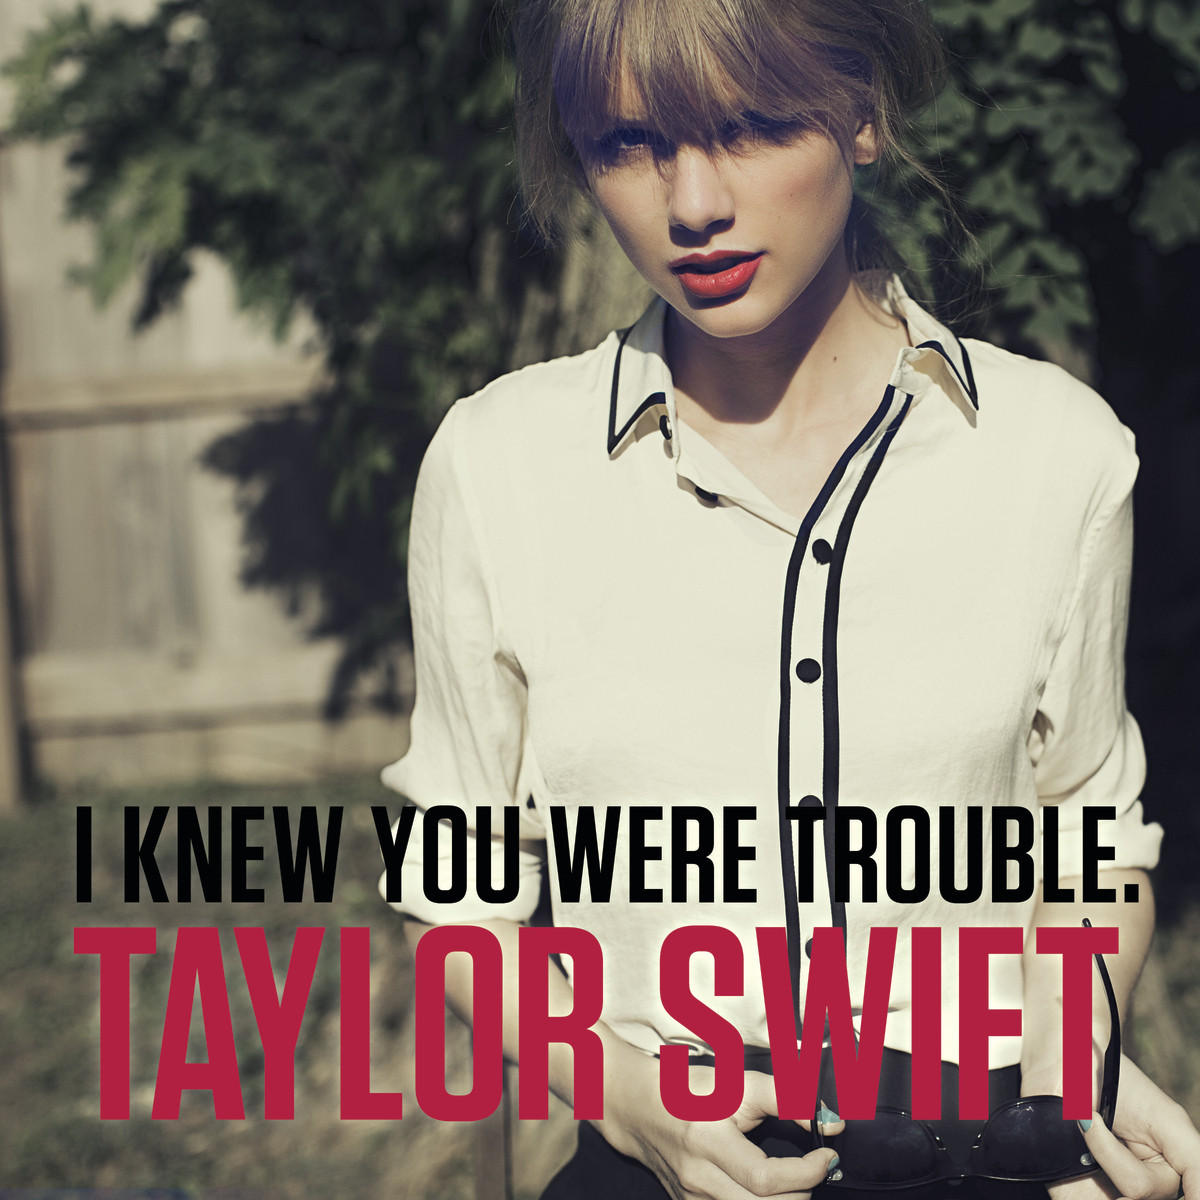 taylor swift i knew you were